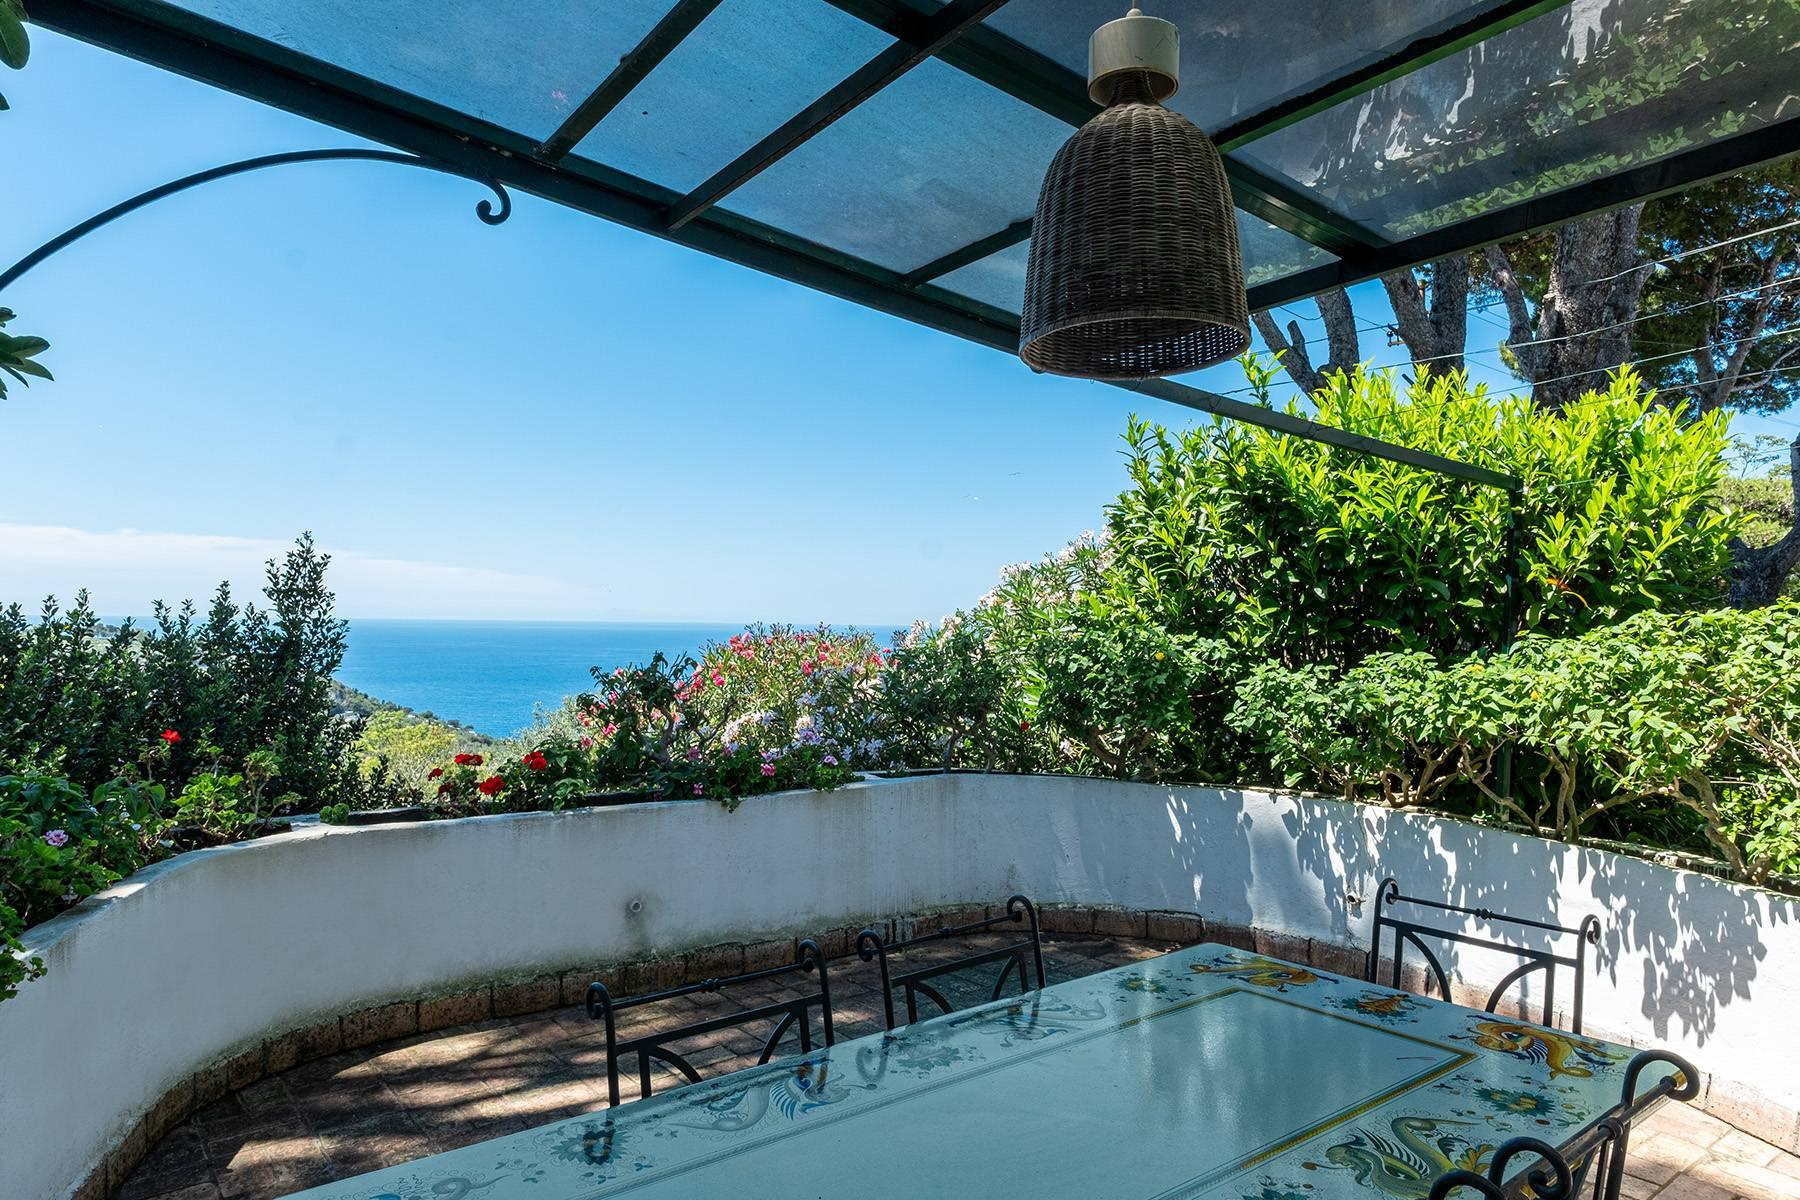 Charming villa with swimming pool in Anacapri - 11